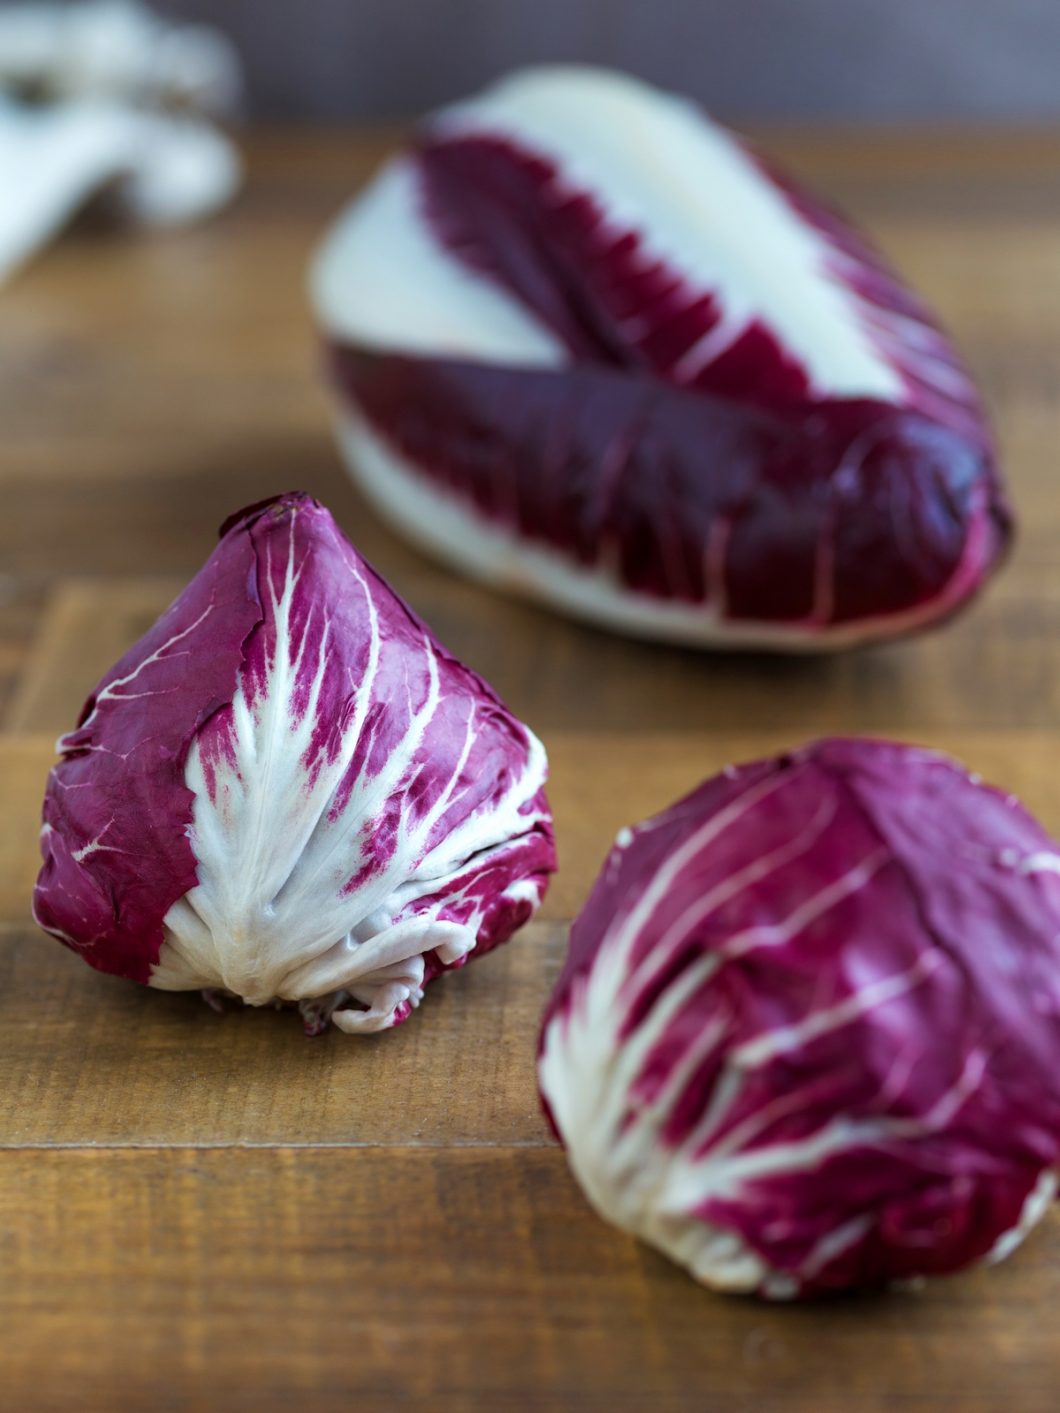 Small round radicchio heads and a long radicchio in the background.